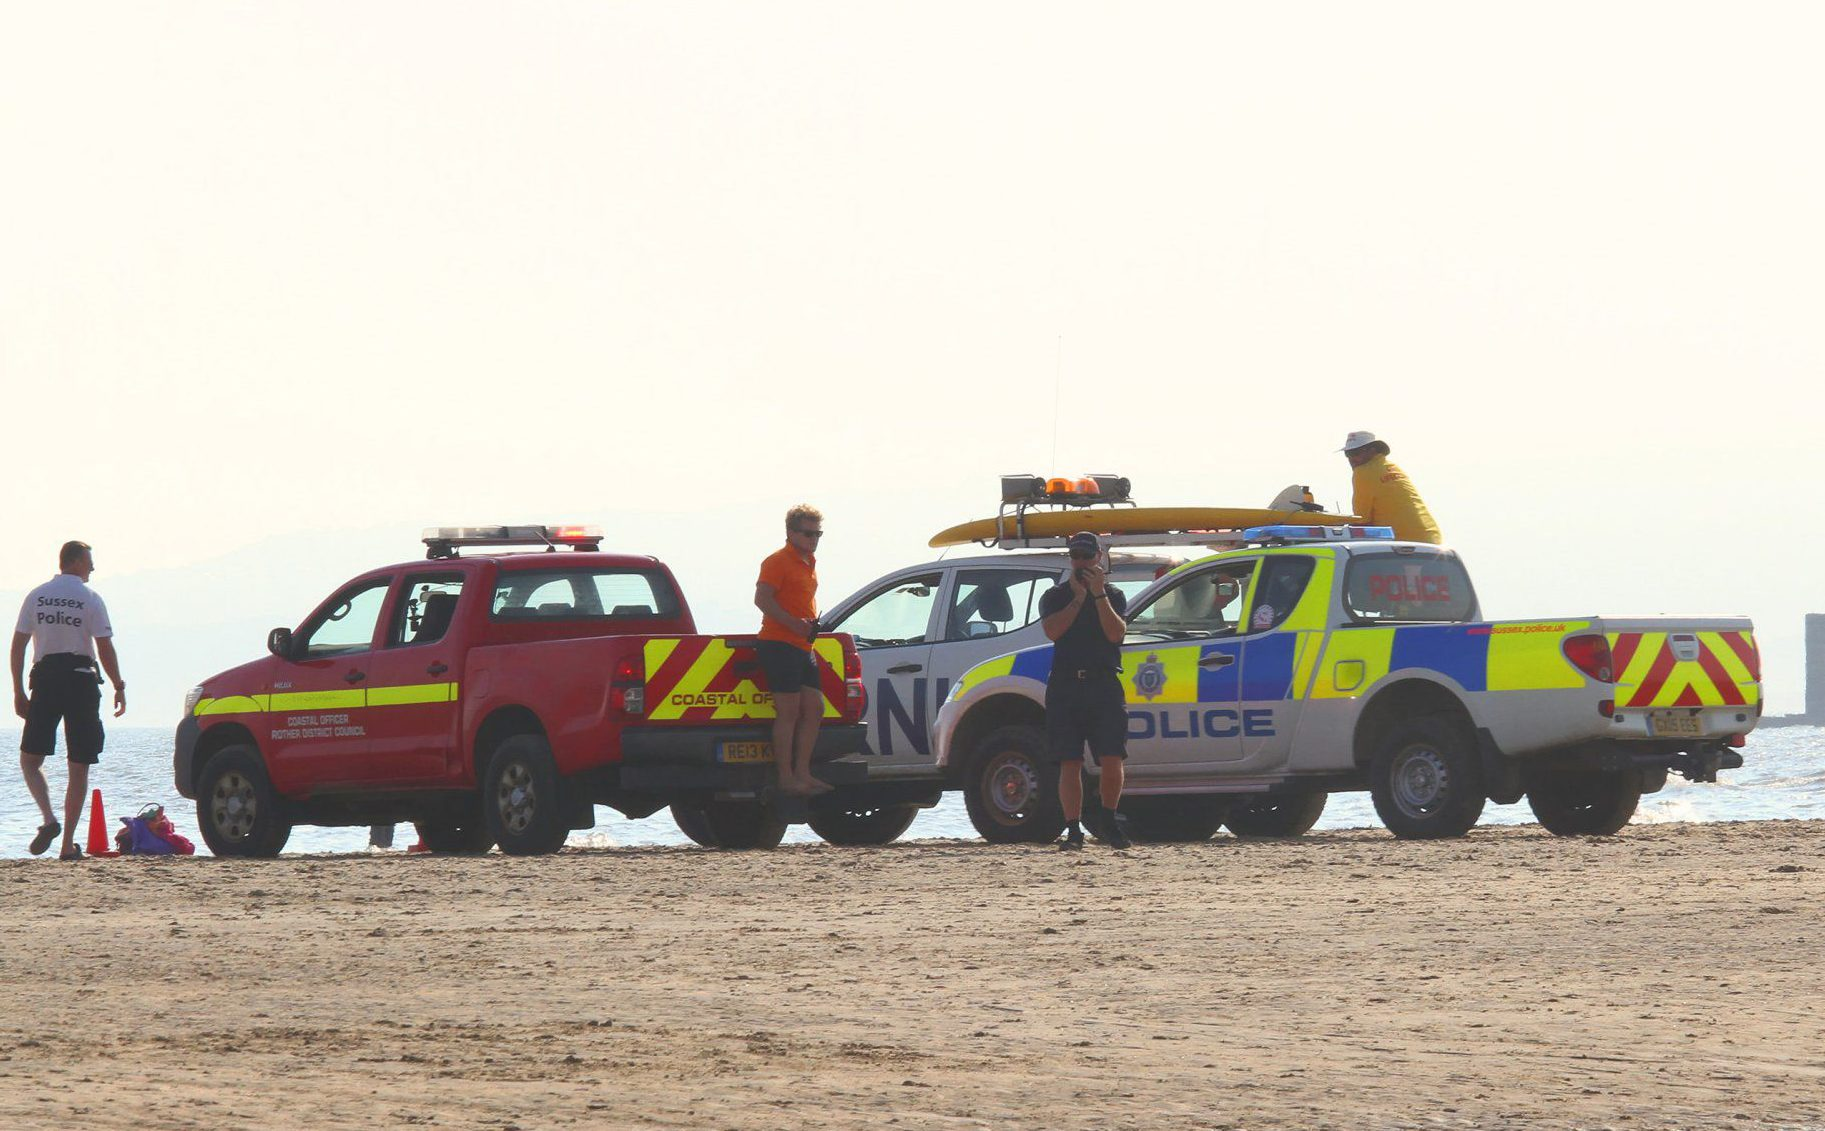 Mandatory Credit: Photo by Ingrid Abery/REX/Shutterstock (5848561k) Camber Sands Surf Lifeguards on duty after the death of five swimmers Surf Lifeguards on duty after the death of five swimmers, Camber Sands, Kent, UK - 27 Aug 2016